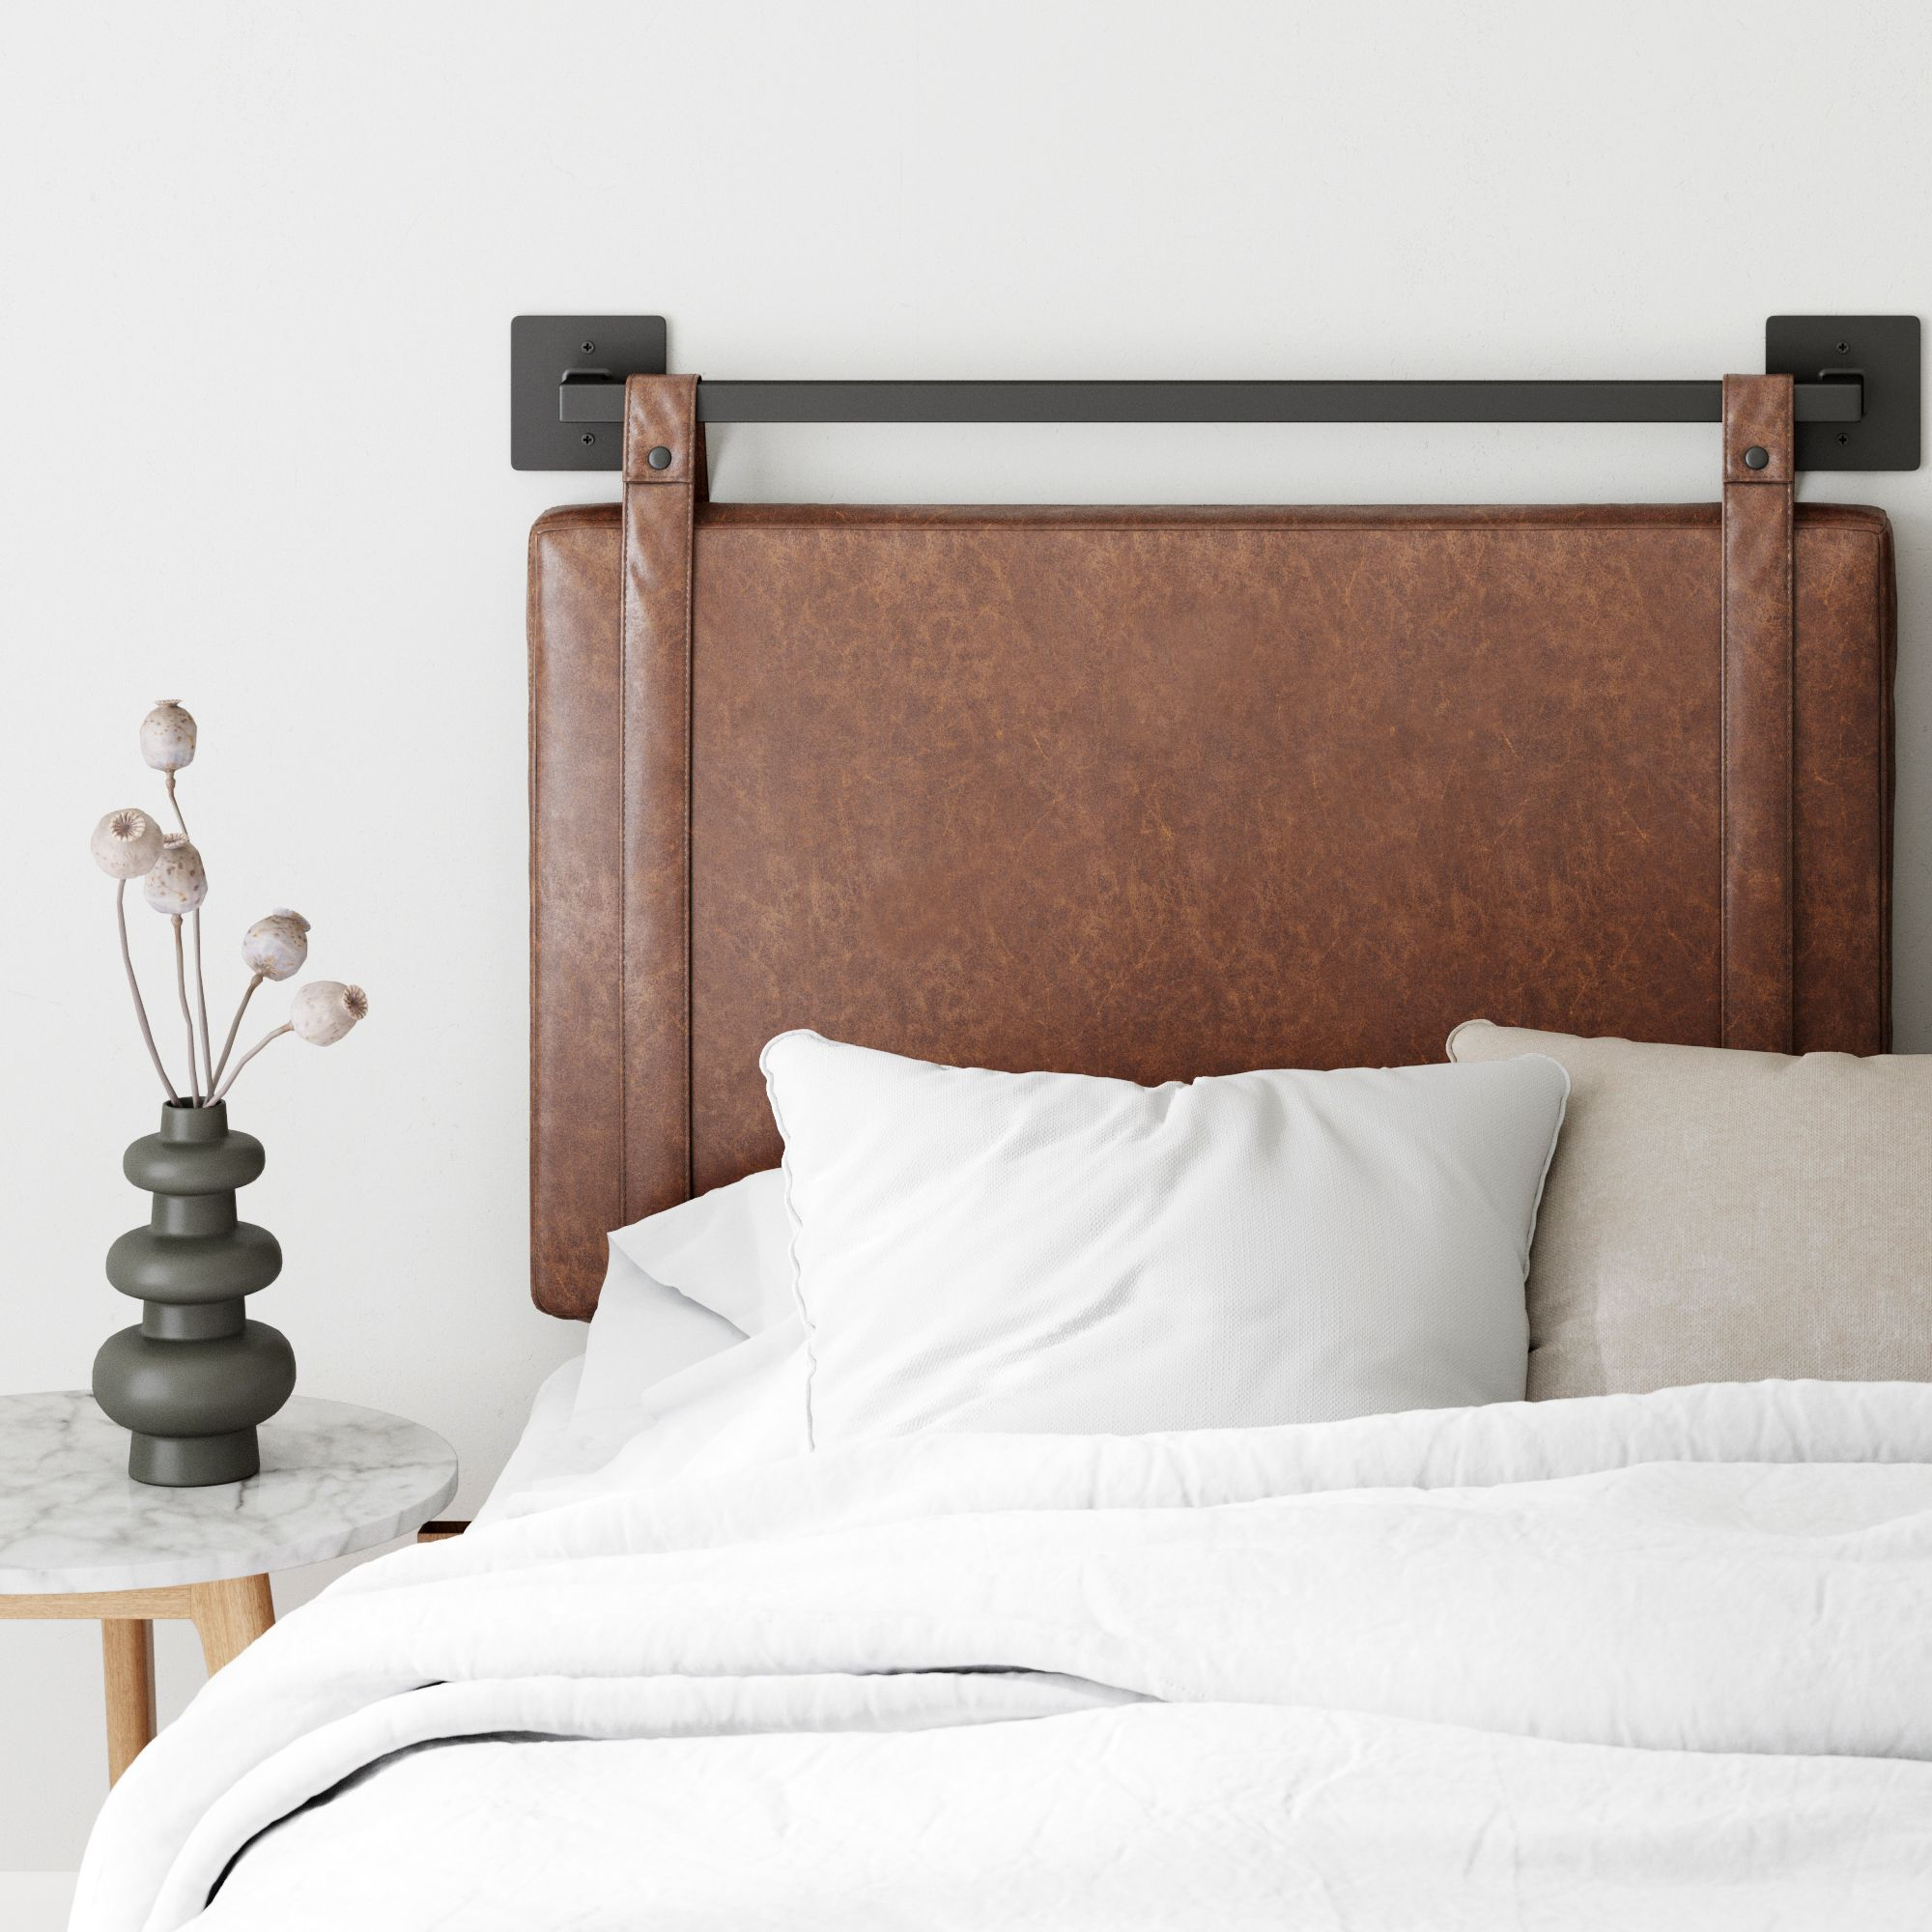 Nathan James Harlow Twin Wall Mount Headboard Faux Leather Upholstered Headboard Adjustable Height Vintage Brown Pu Leather Straps With Black Matte Metal Rail In 2020 Upholstered Headboard Upholstered Panels Wall Mounted Headboards